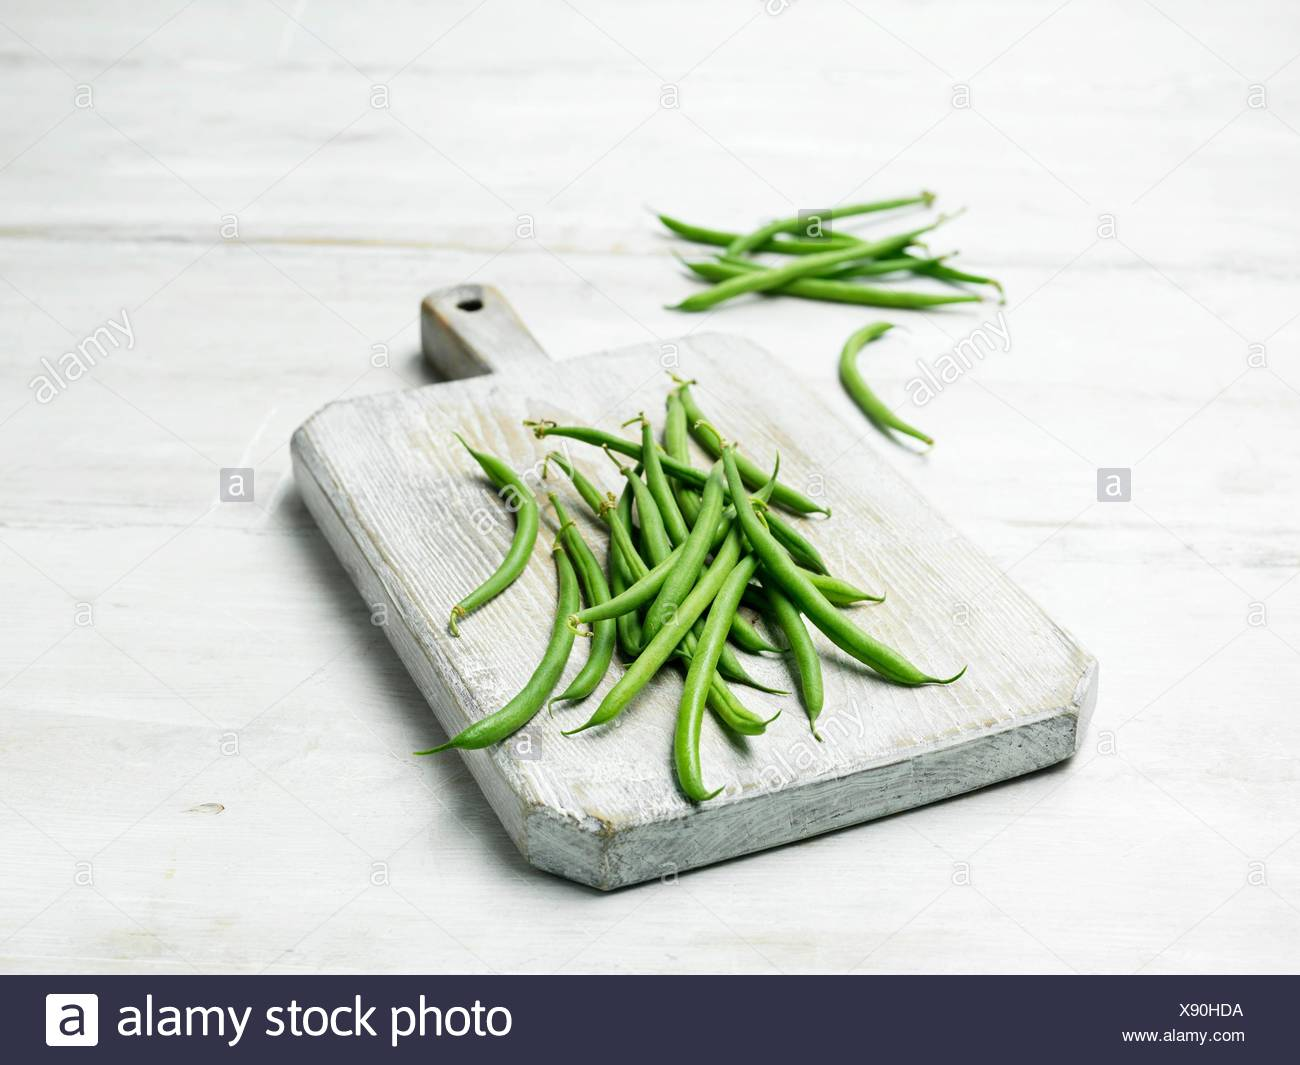 Extra fine green bean on wooden chopping board - Stock Image